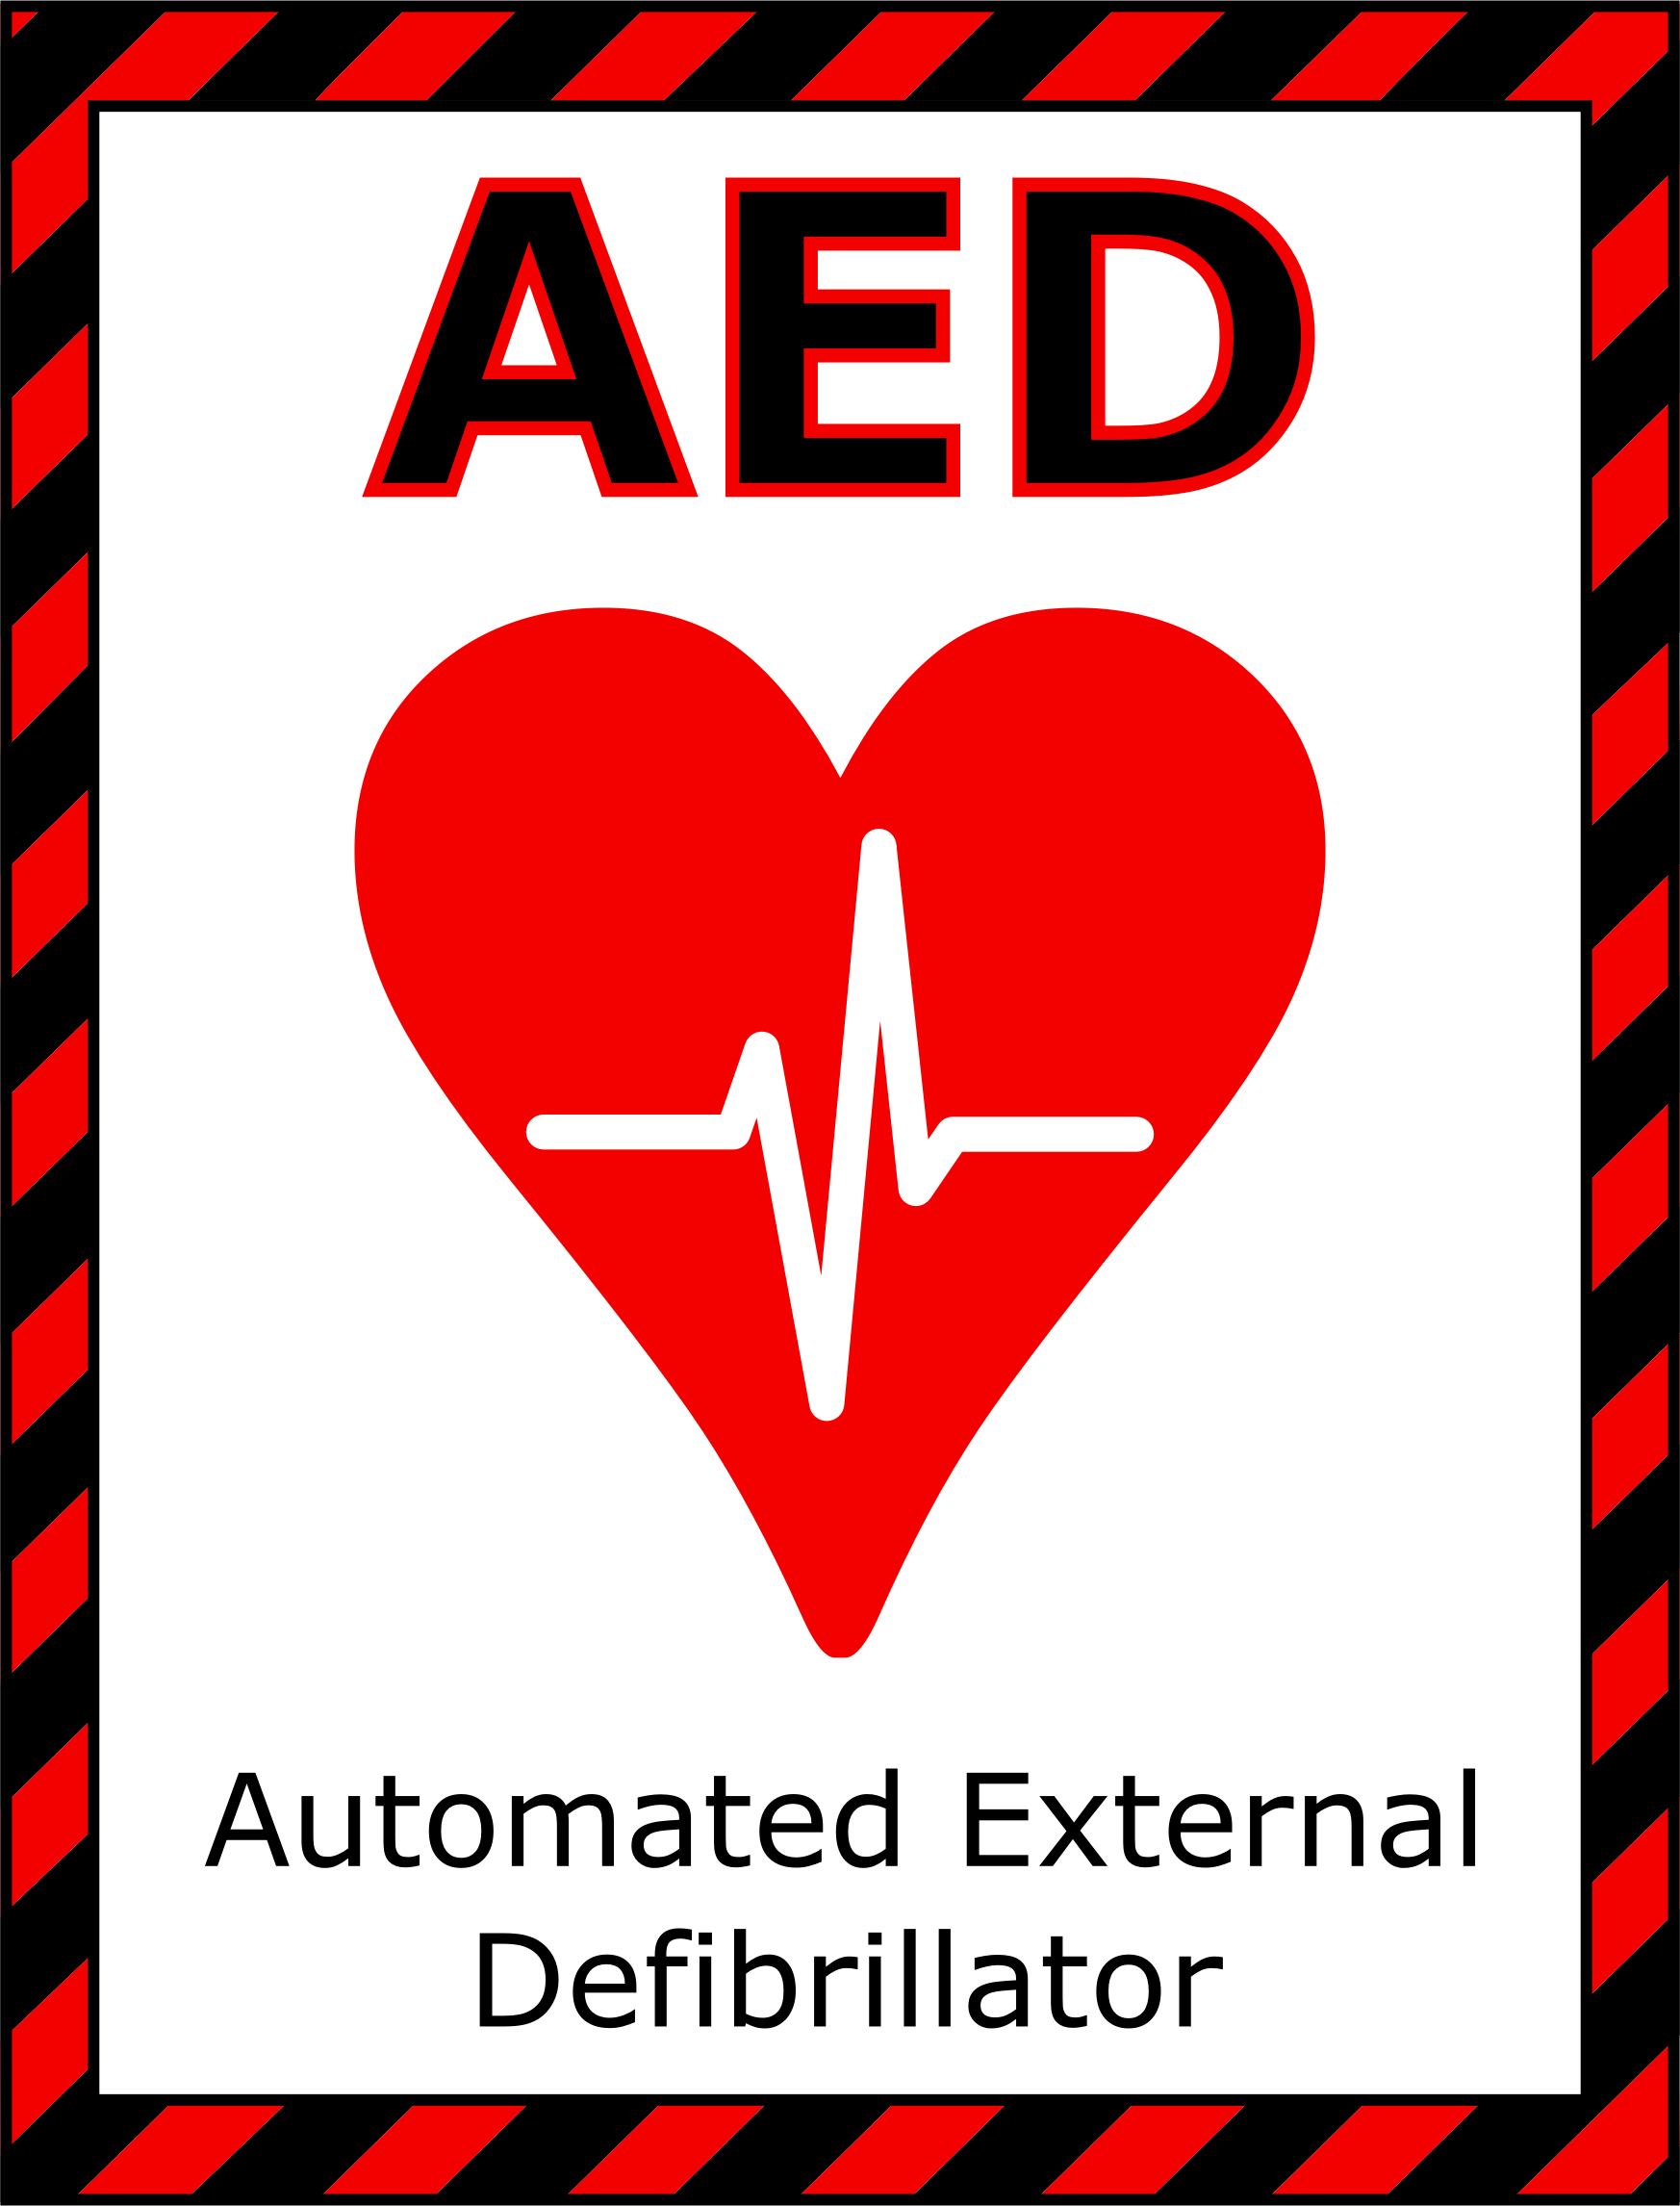 Aed Logo PNG - 102357